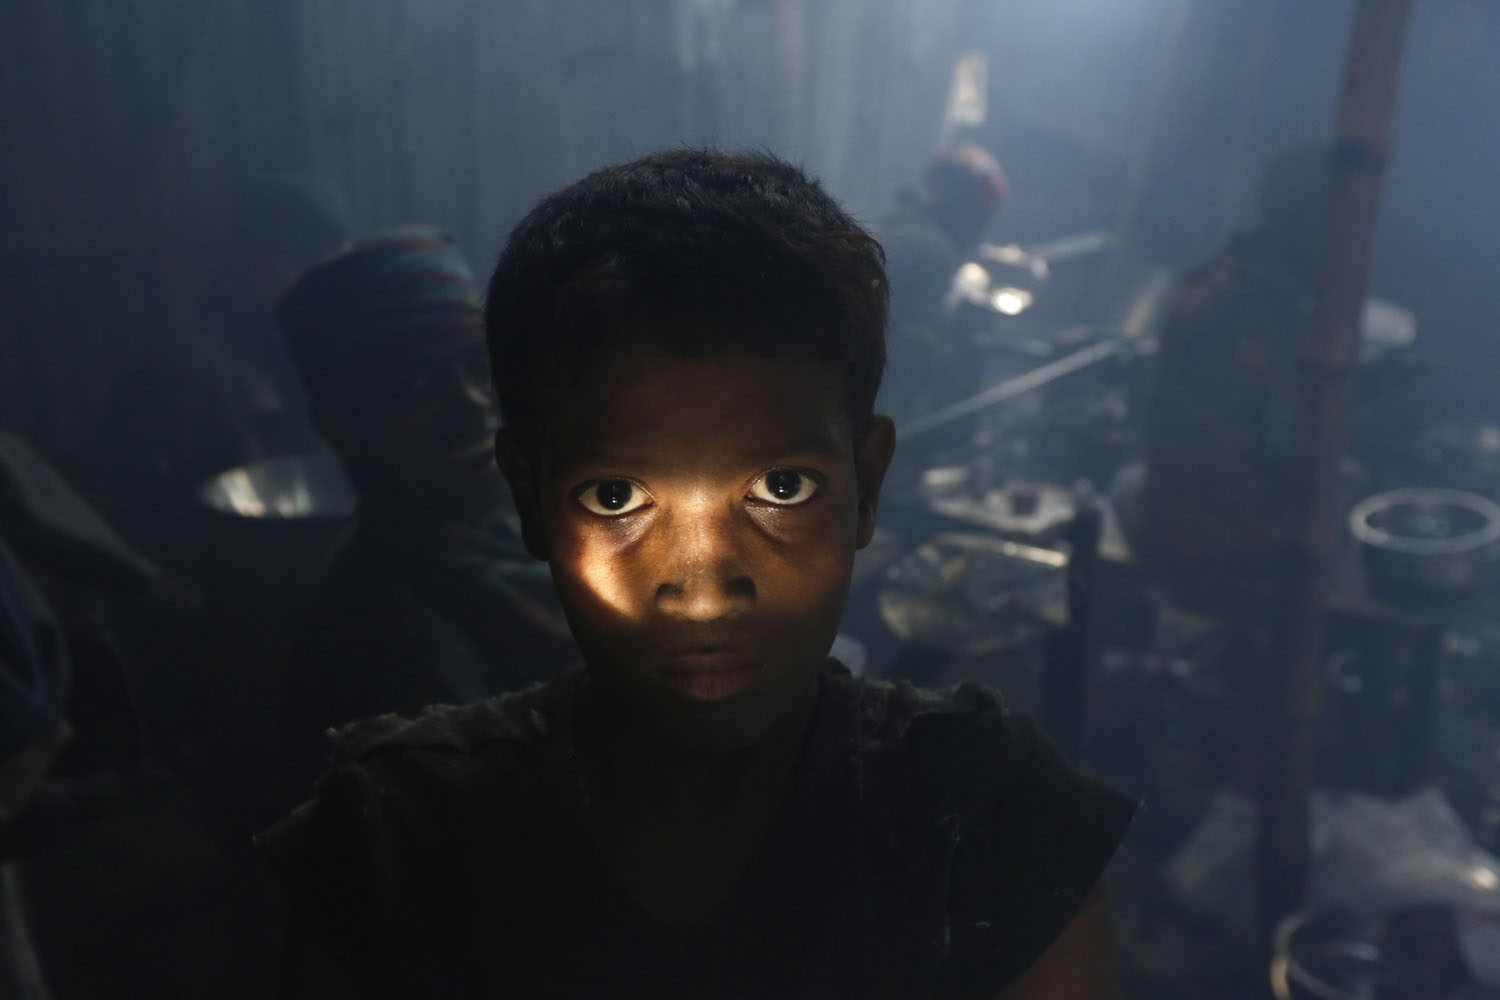 Aug. 25, 2014. A Bangladeshi child worker poses during a break as he makes aluminium bowls at a small factory in Dhaka, Bangladesh. The workers get 2/3 euro per day while they work in unsafe conditions.